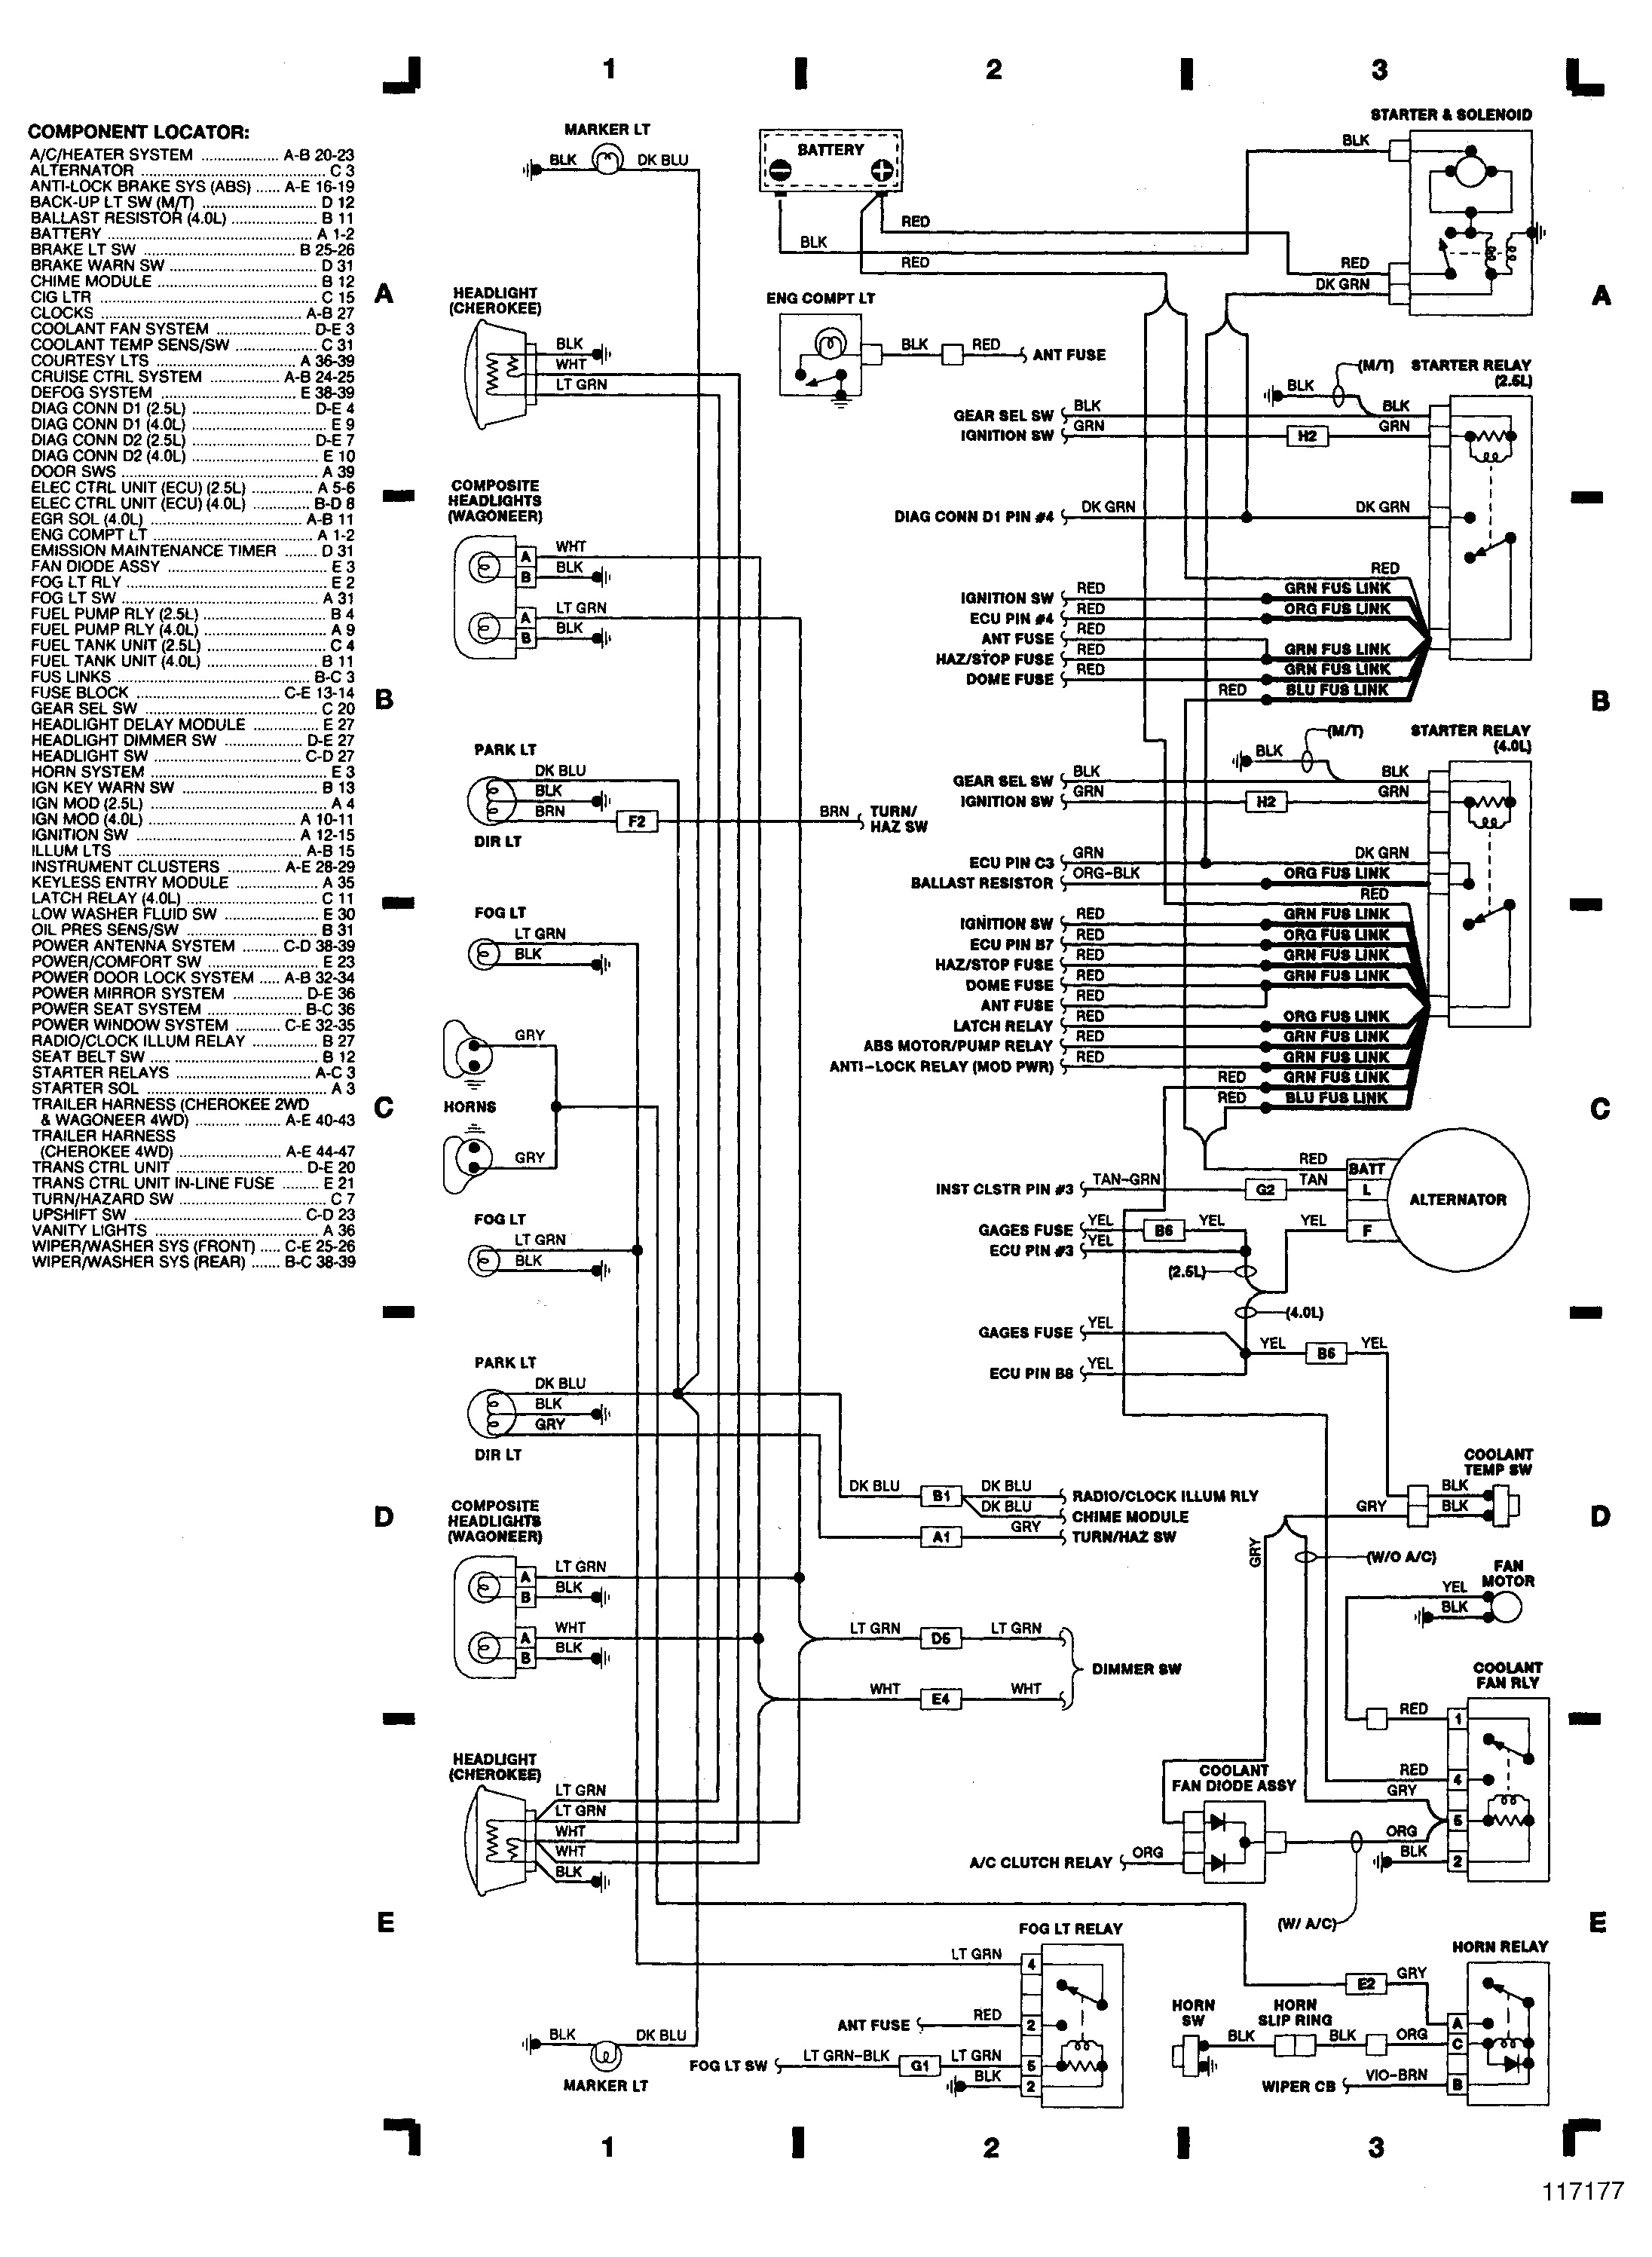 [SCHEMATICS_43NM]  2005 Jeep Grand Cherokee Radio Wiring Harness - E5 wiring diagram | 2004 Jeep Liberty Stereo Wiring Diagram |  | KUBB-AUF.DE